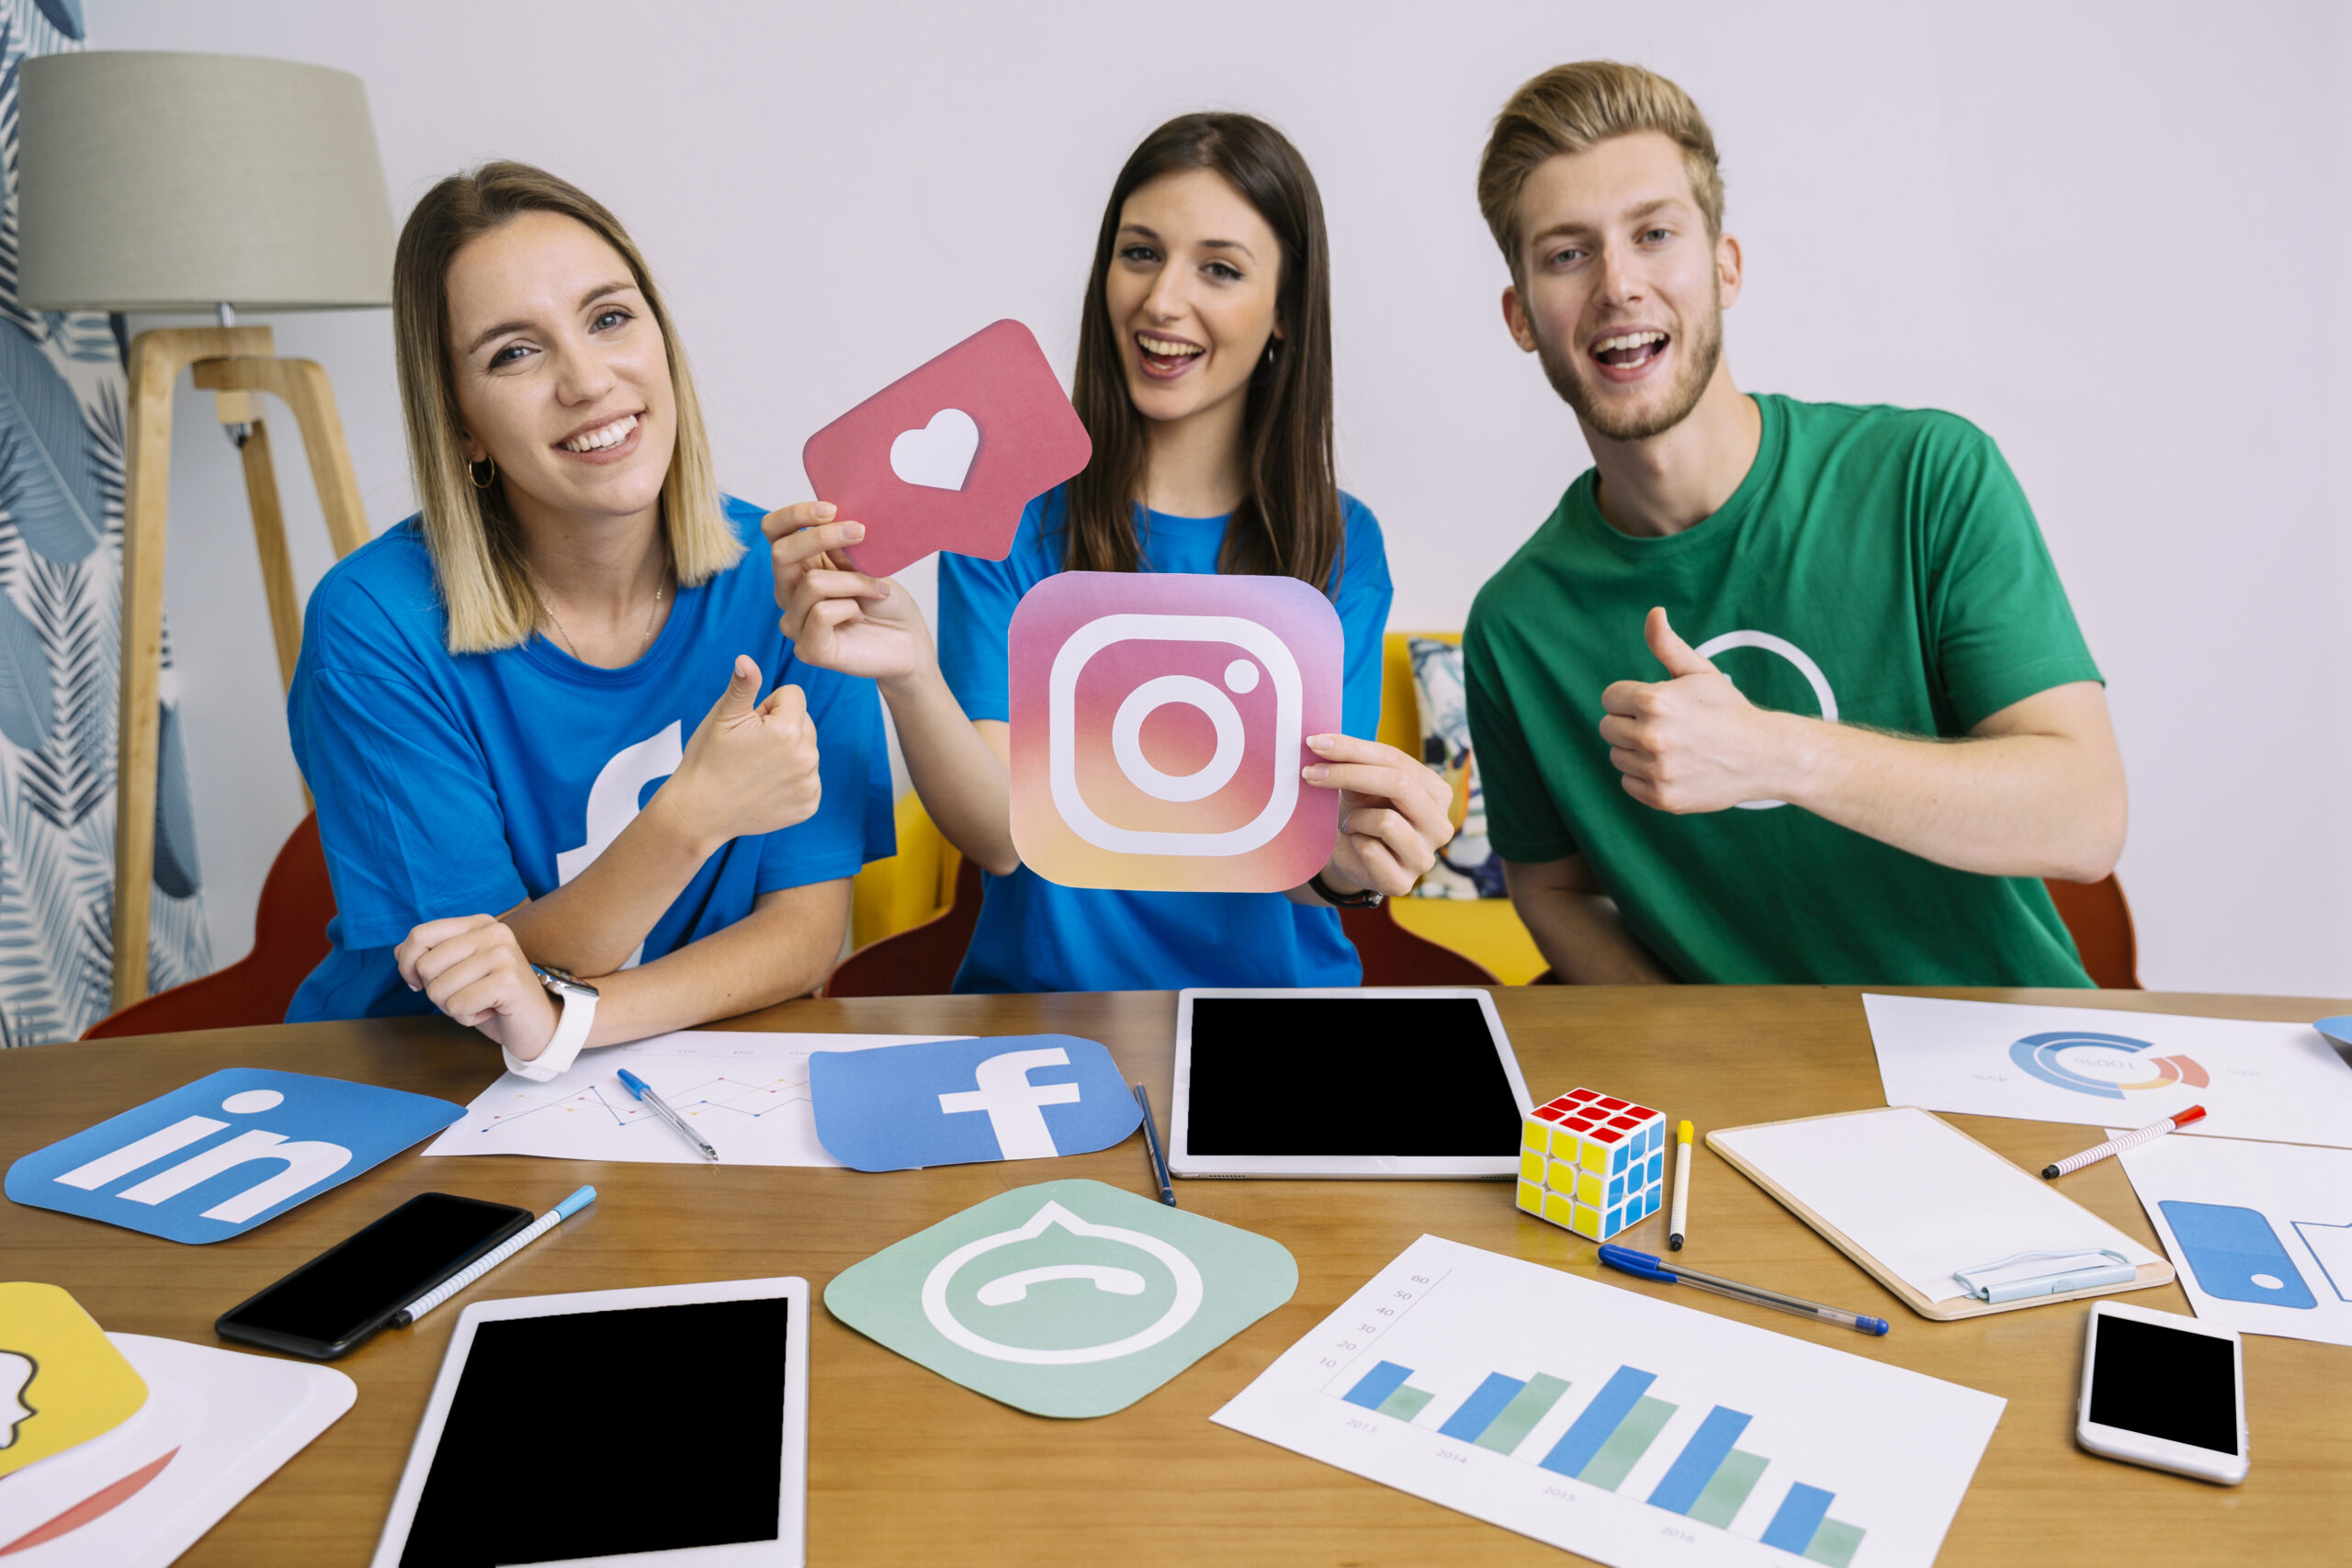 woman-holding-snapchat-logo-with-his-friends-showing-thumbup-sign<span class='yasr-stars-title-average'><div class='yasr-stars-title yasr-rater-stars' id='yasr-overall-rating-rater-160e8d0026b89' data-rating='5' data-rater-starsize='16'> </div></span>